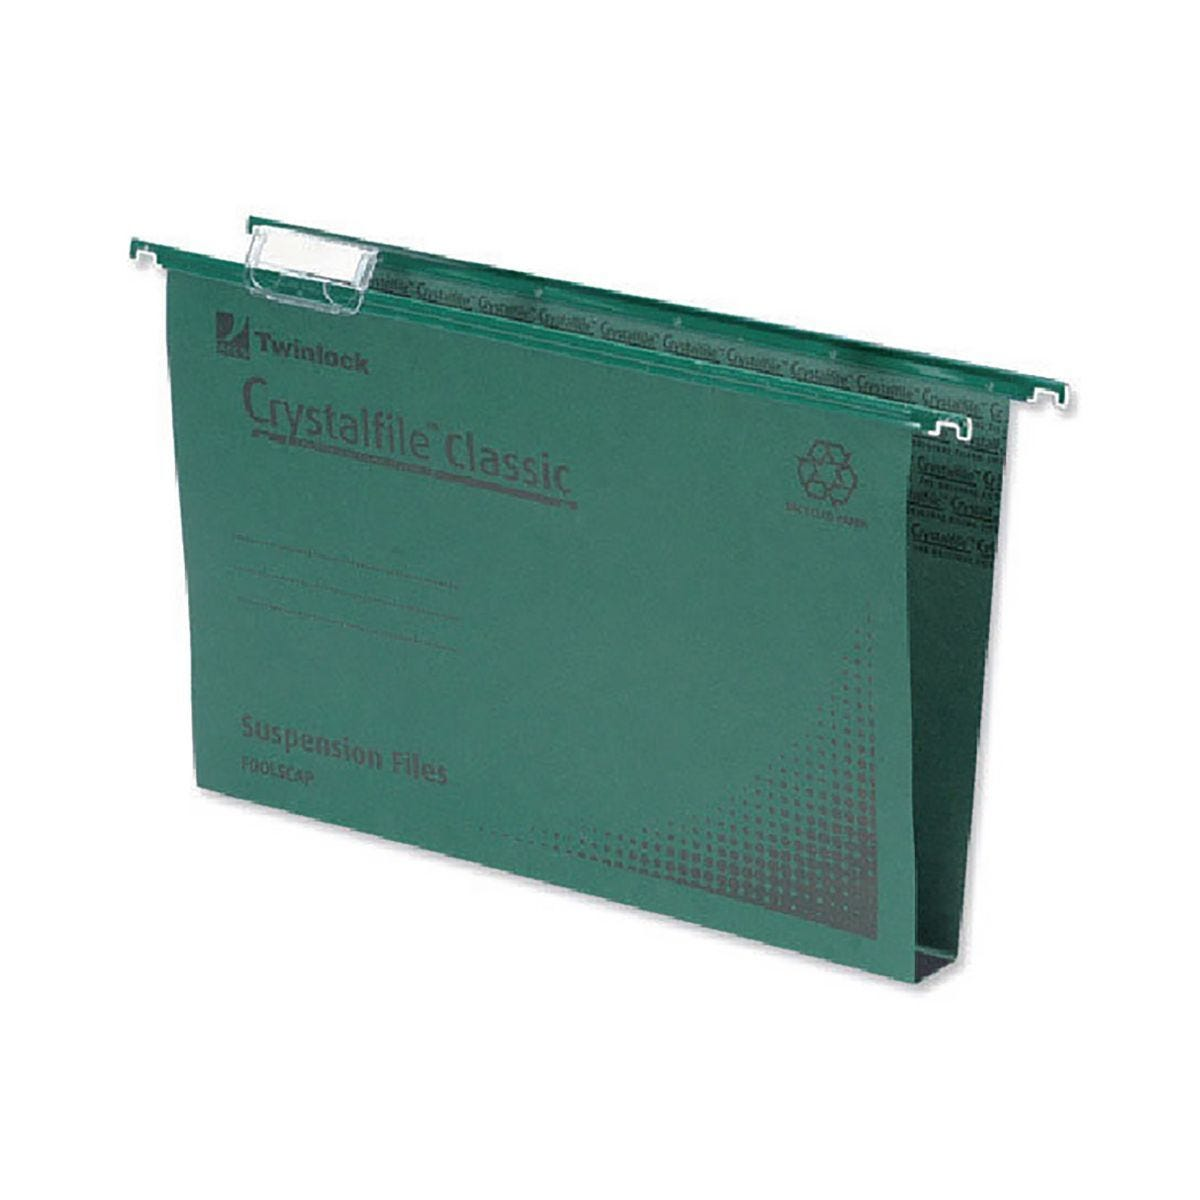 Rexel Crystalfile Classic Suspension File 50mm Green